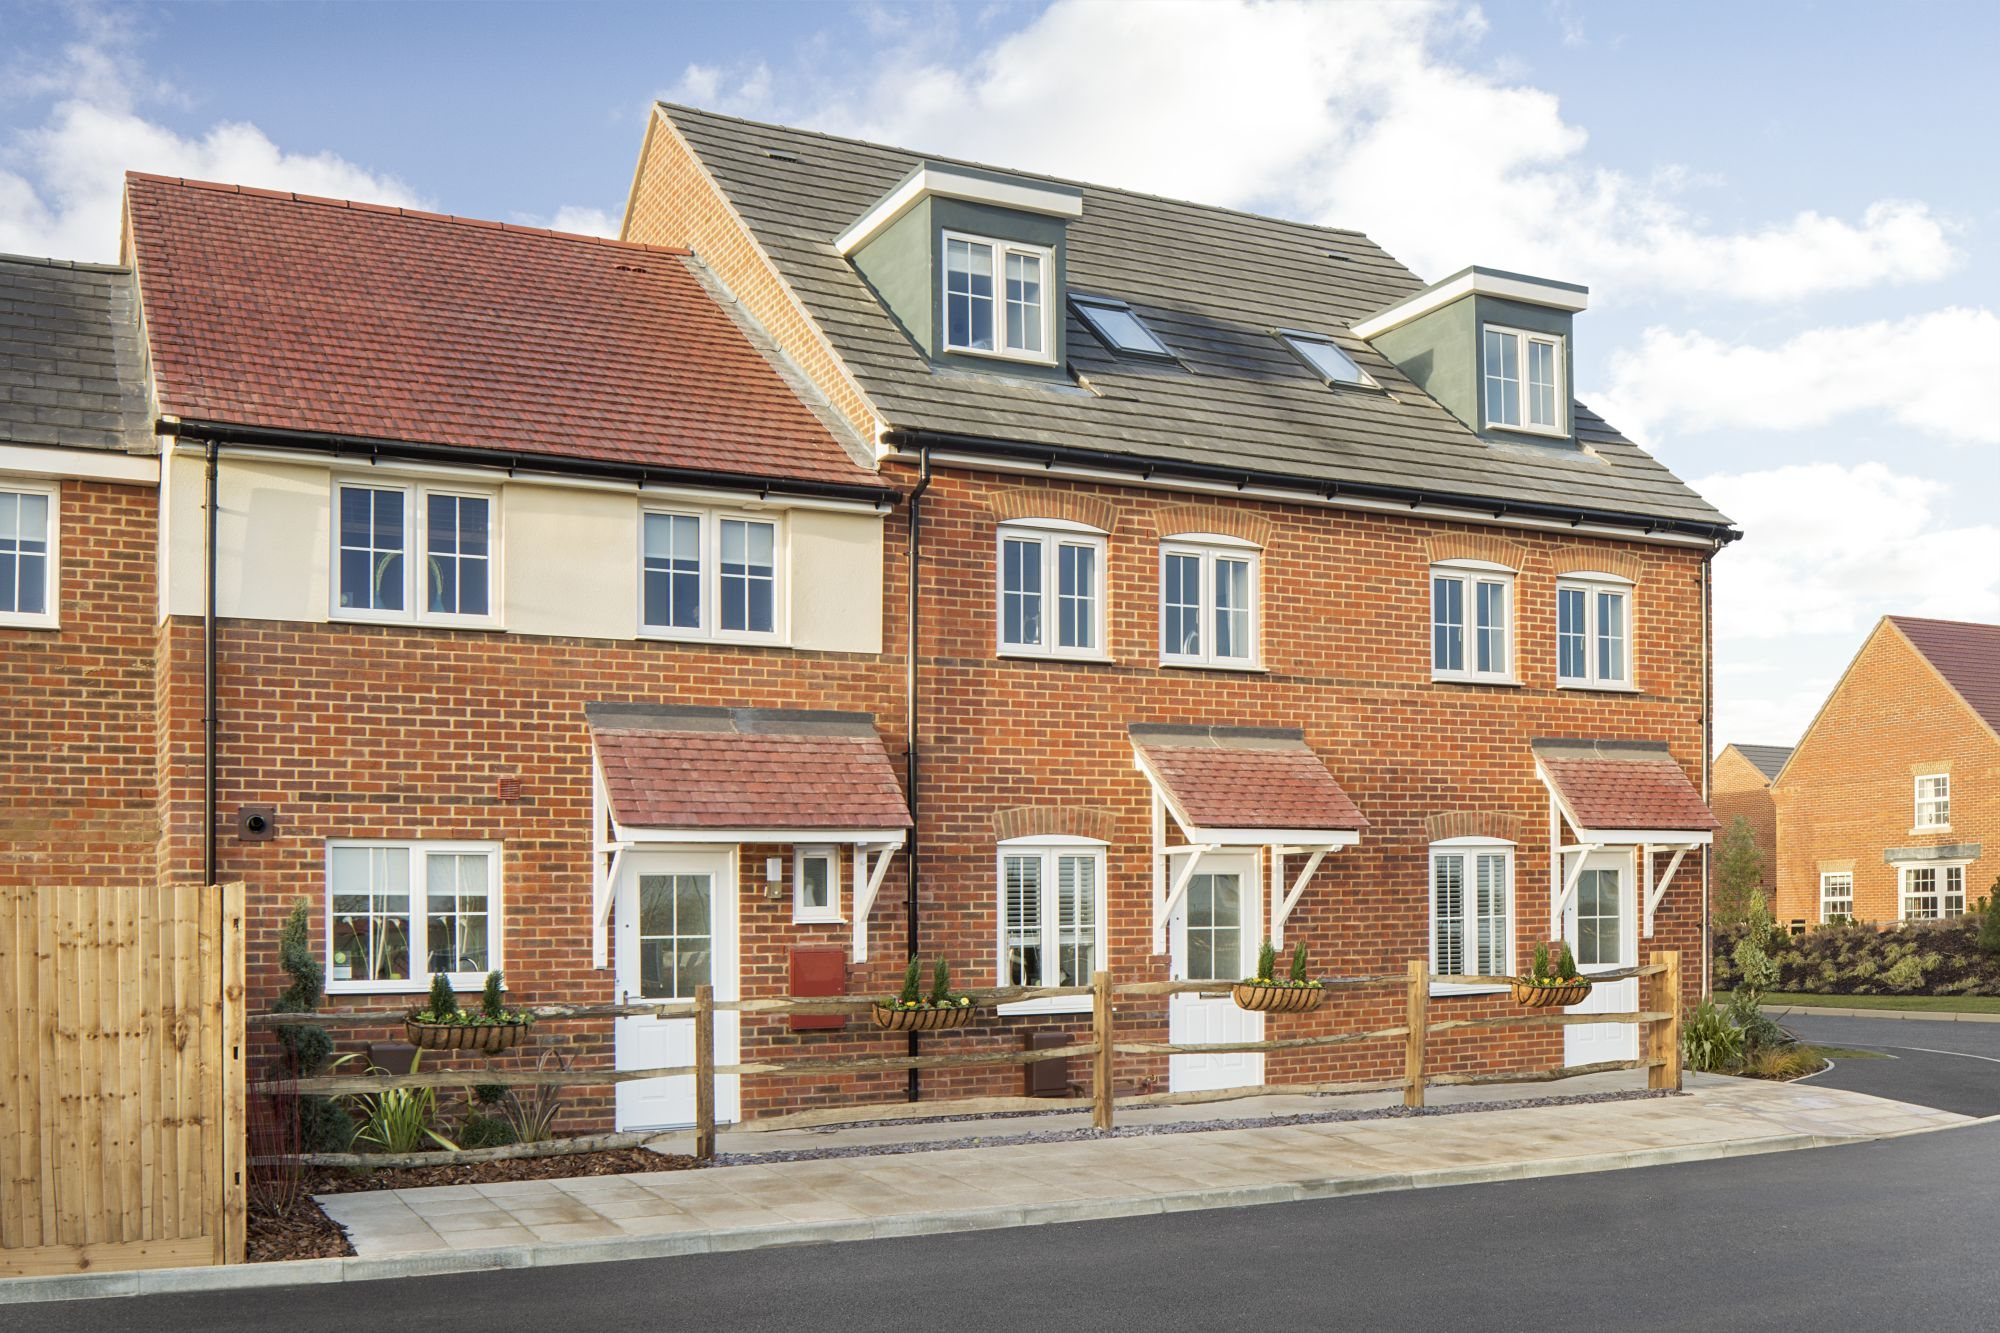 New Build Homes in Bognor Regis